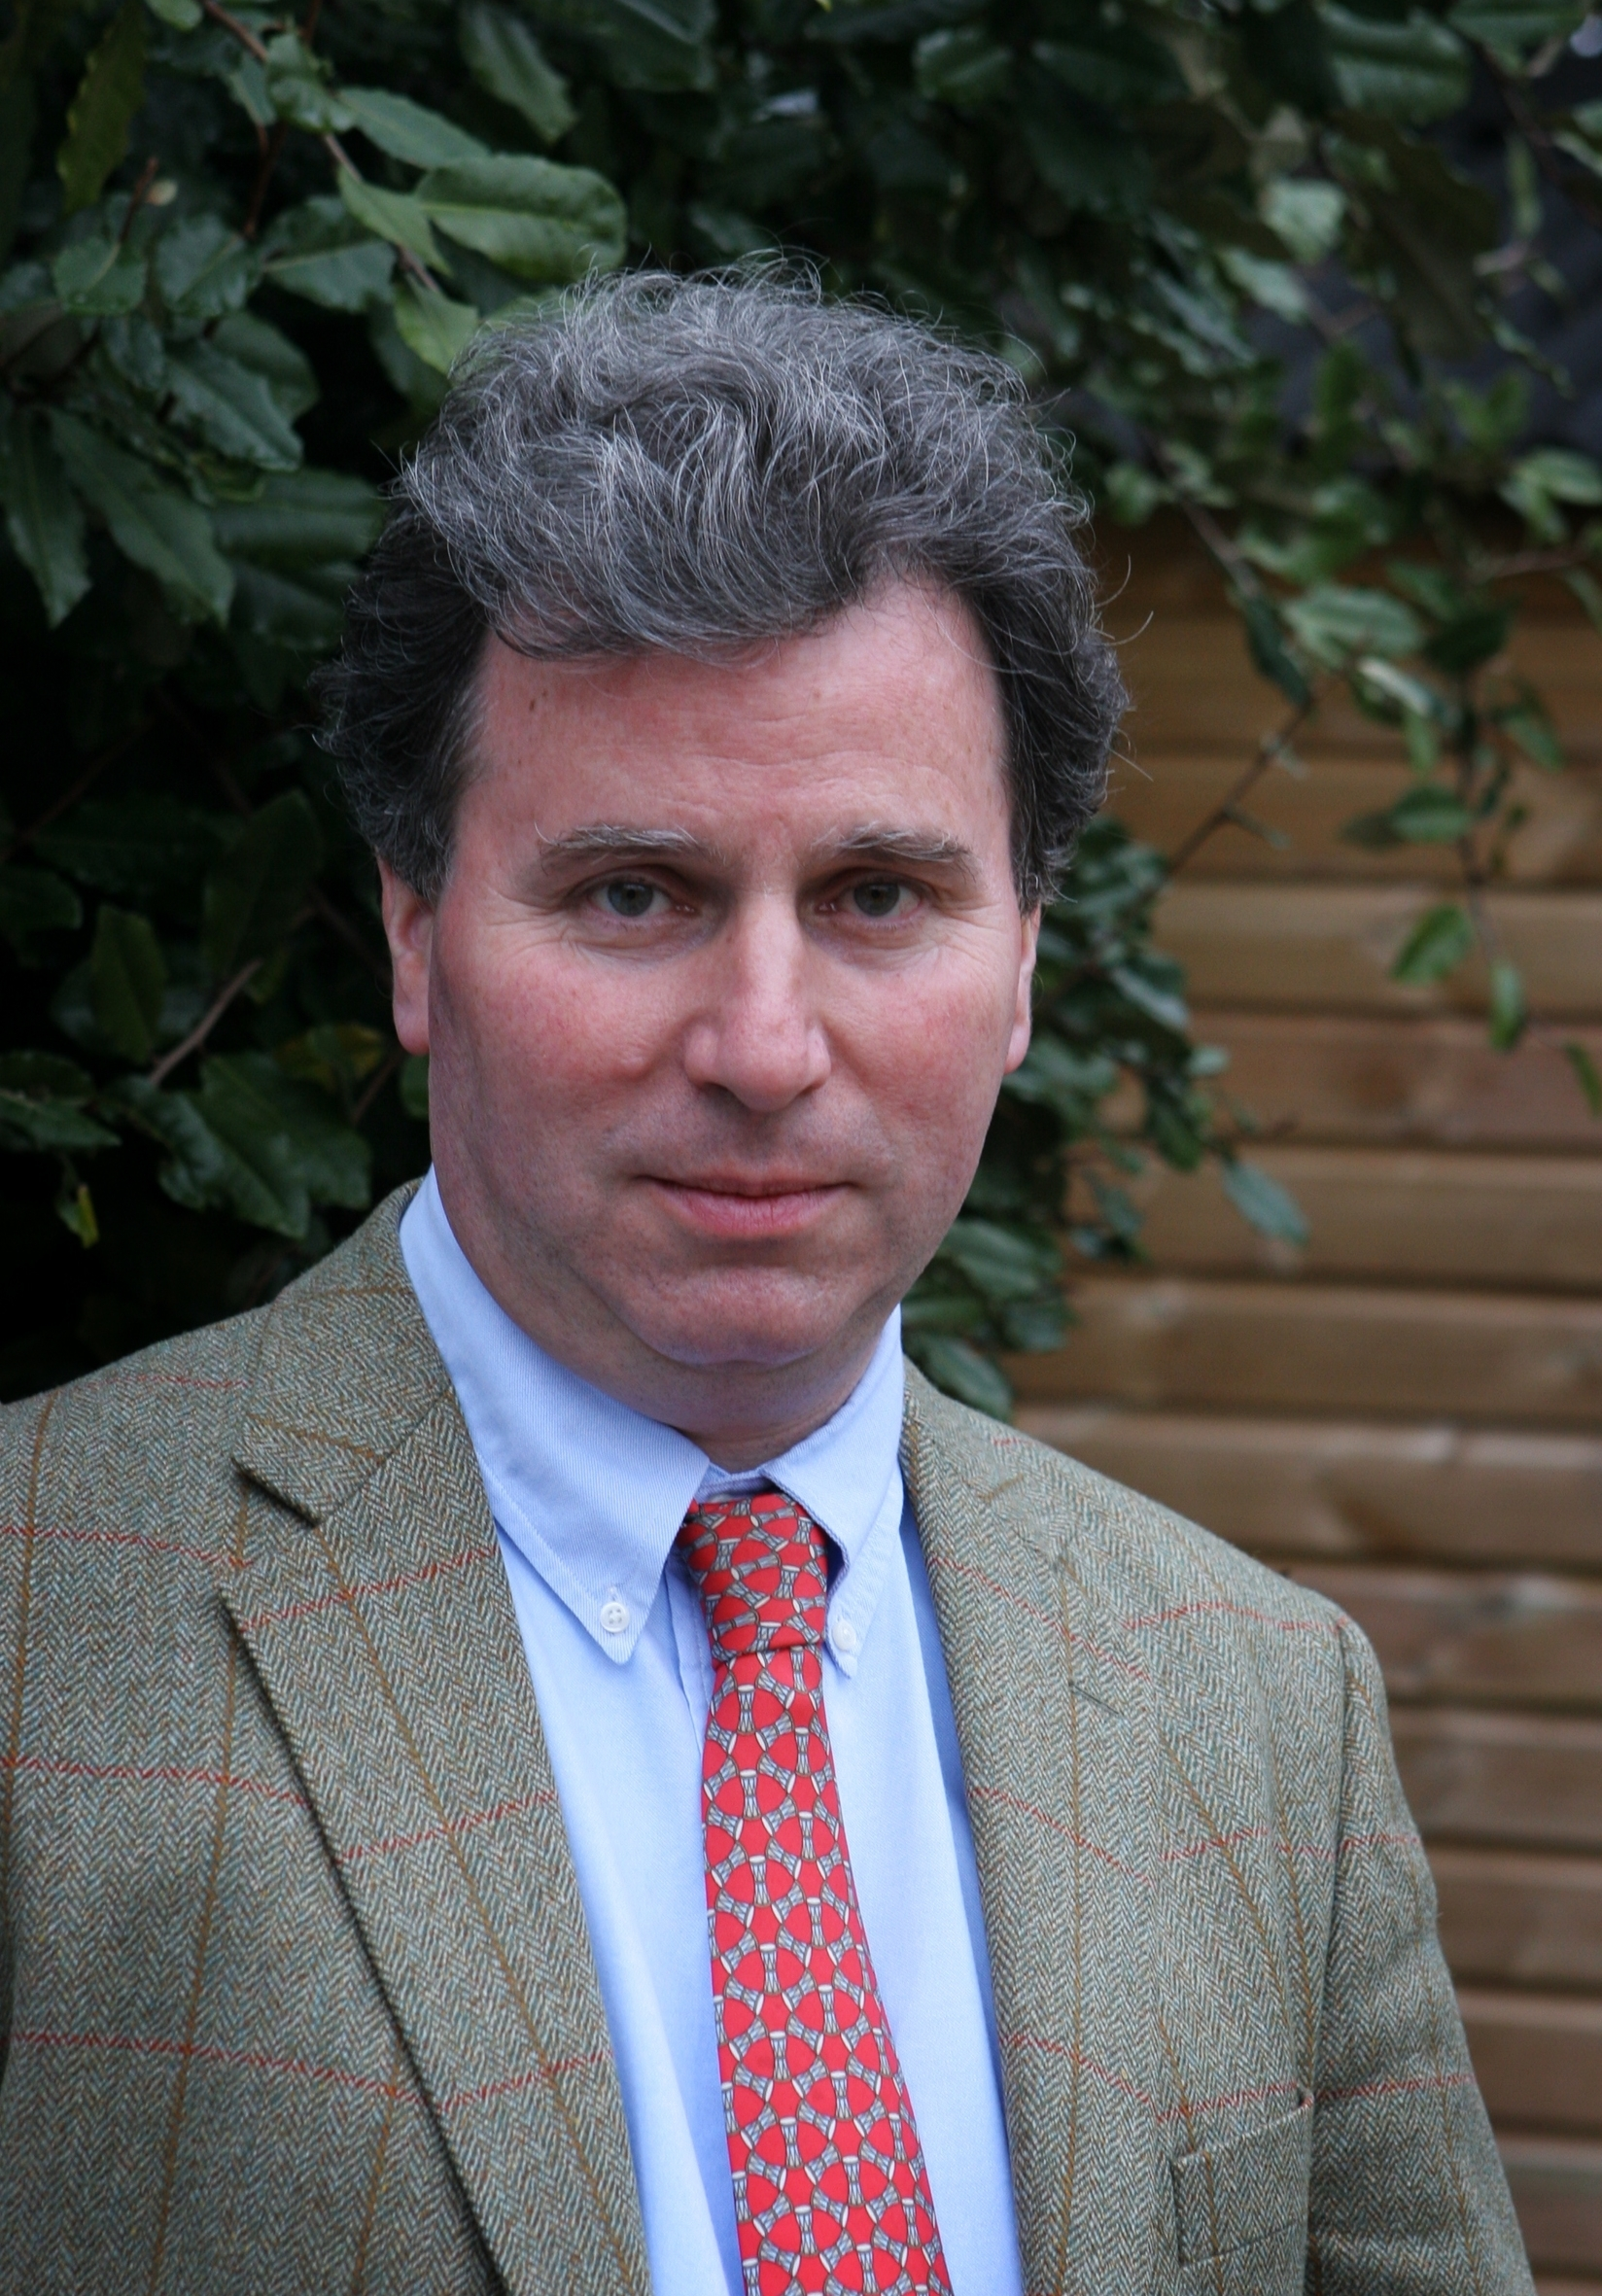 Column by West Dorset MP Oliver Letwin